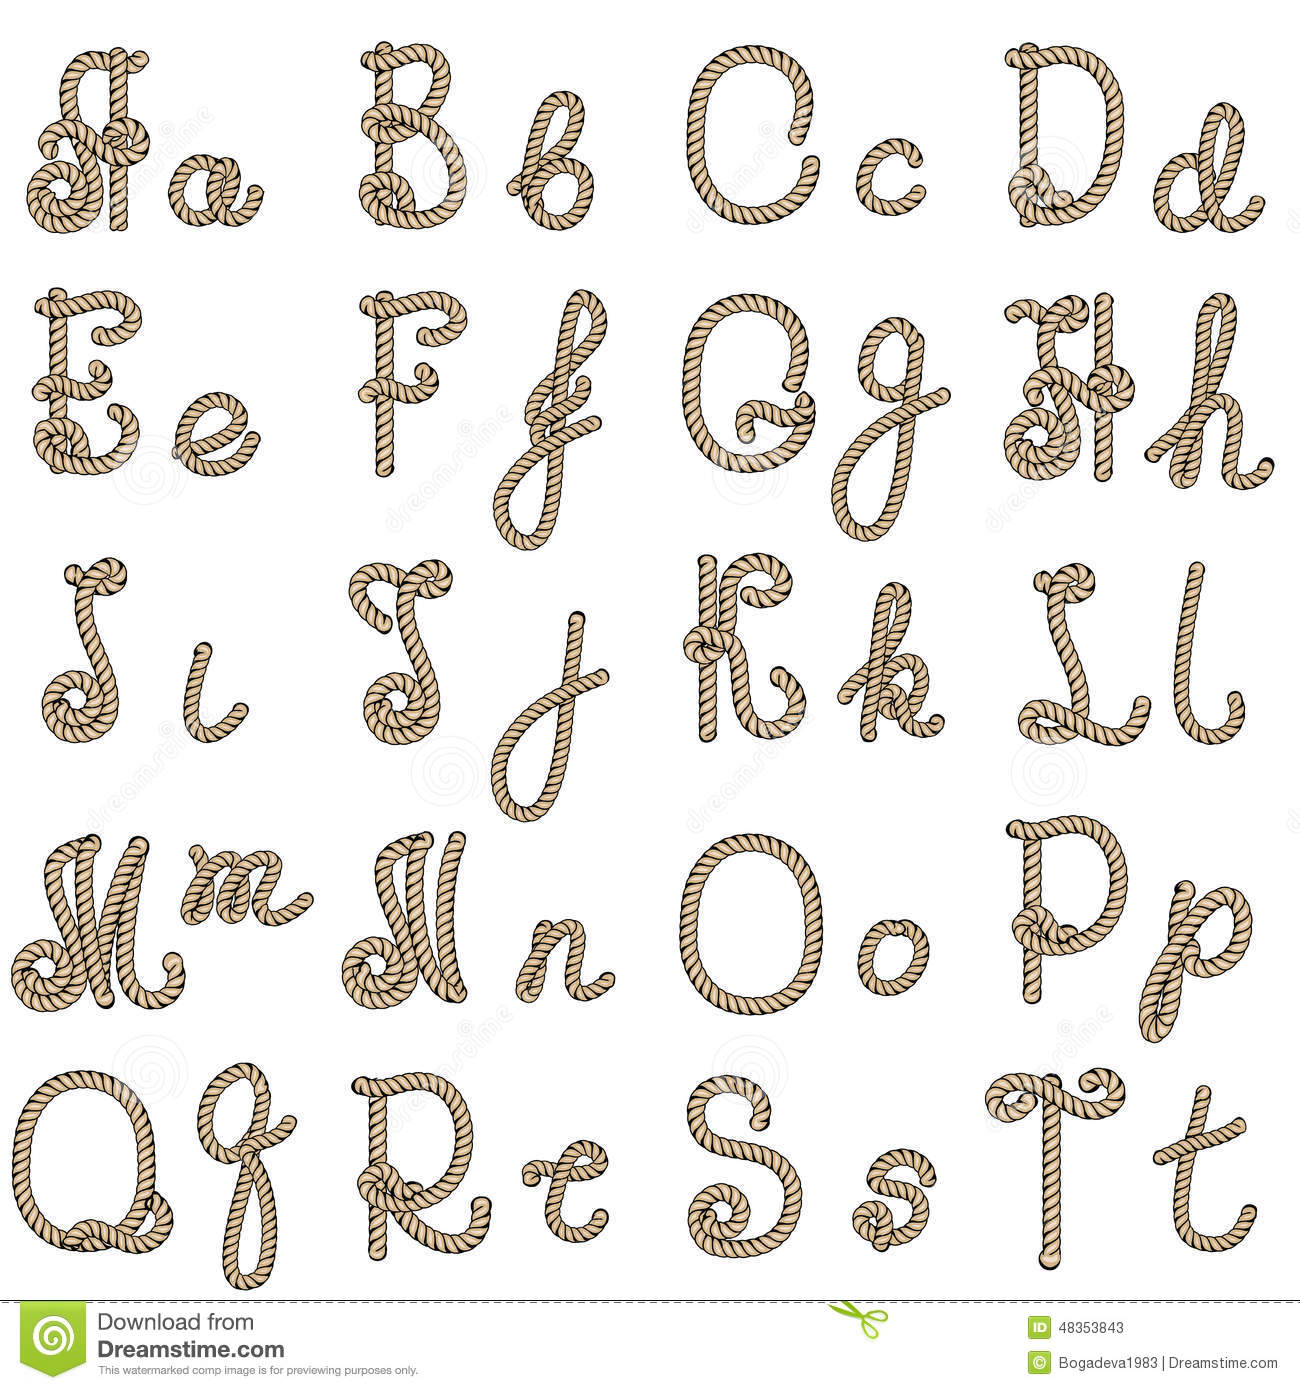 Old Rope Alphabet From A To T Stock Vector - Image: 48353843